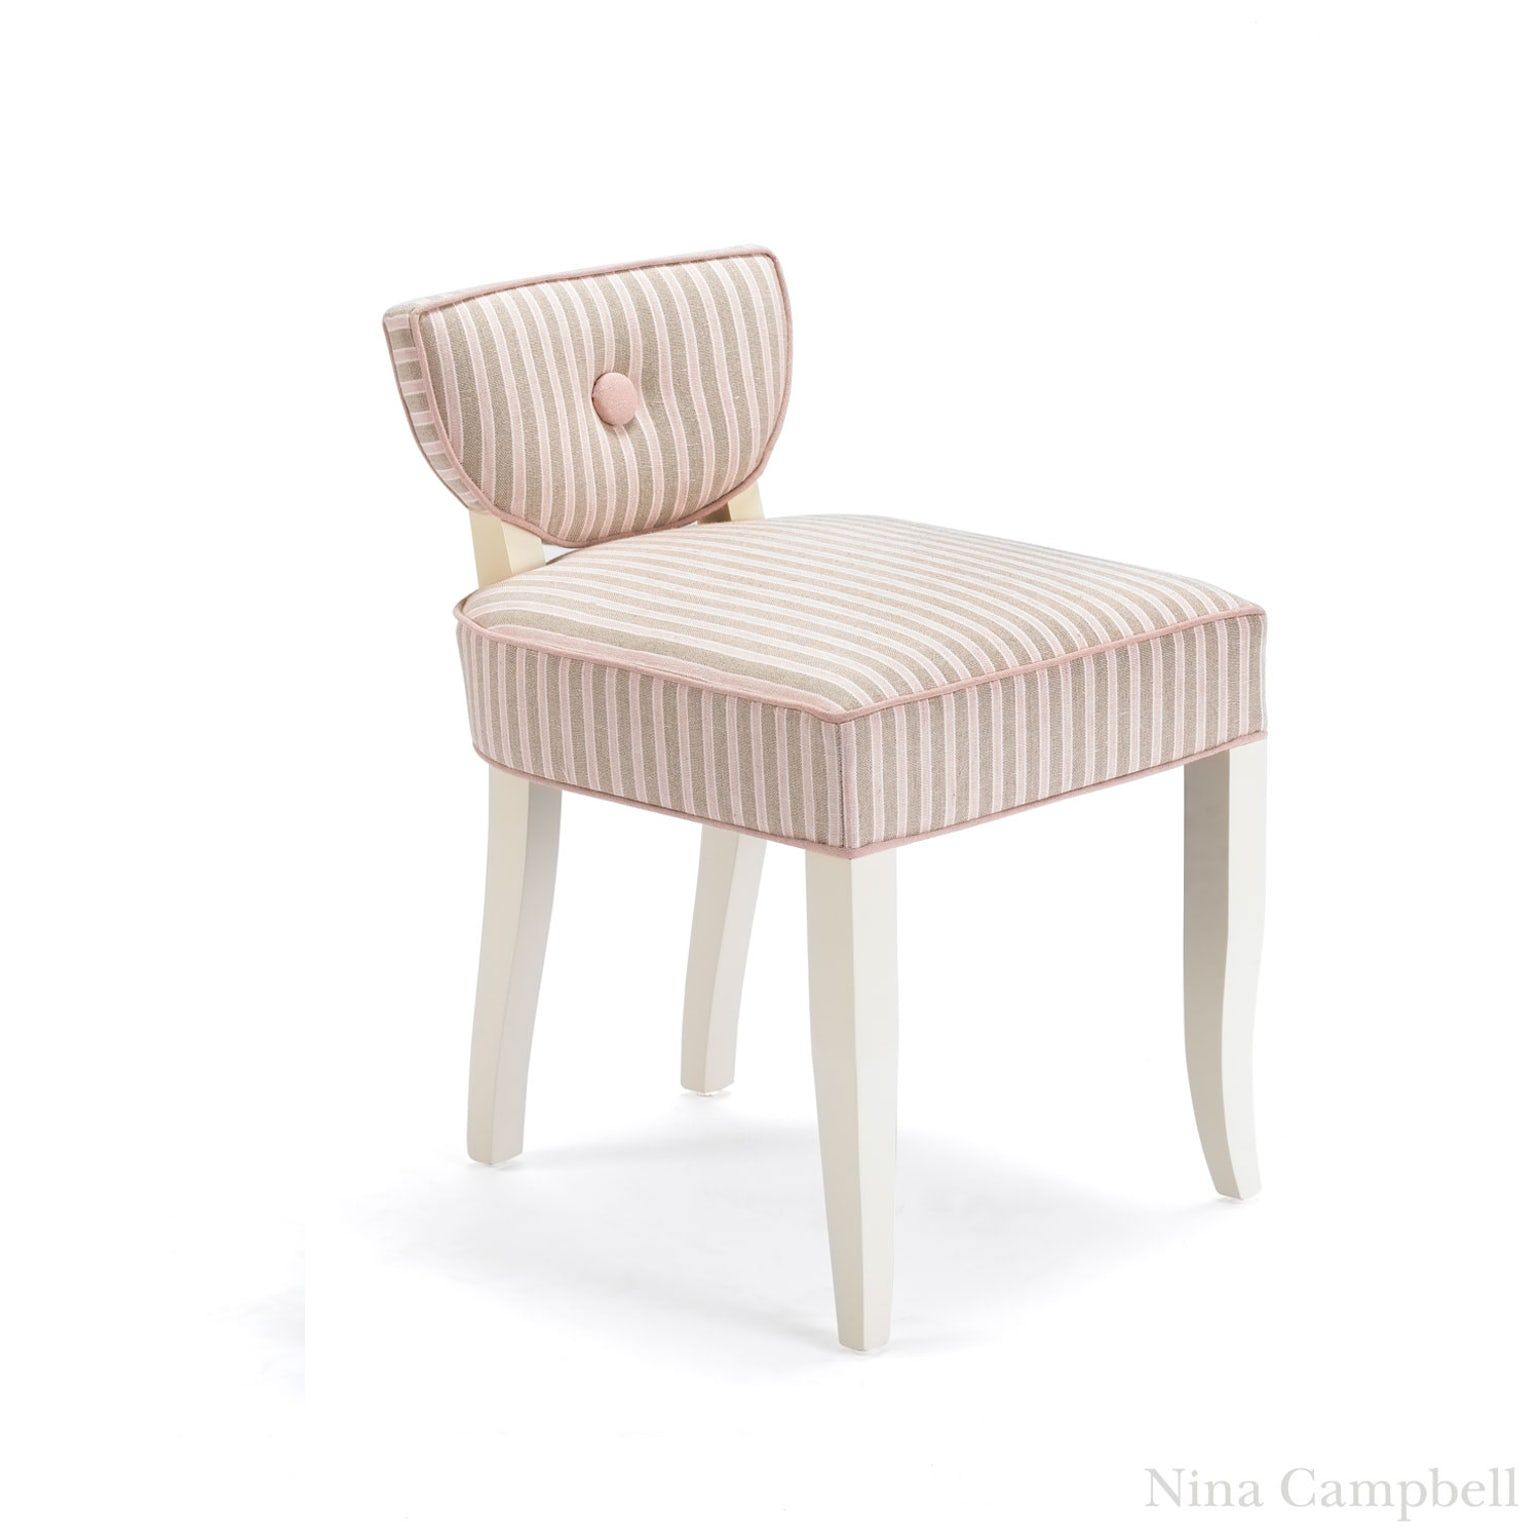 Doris Dressing Table Stool Rocking Chair Porch Blue Chairs